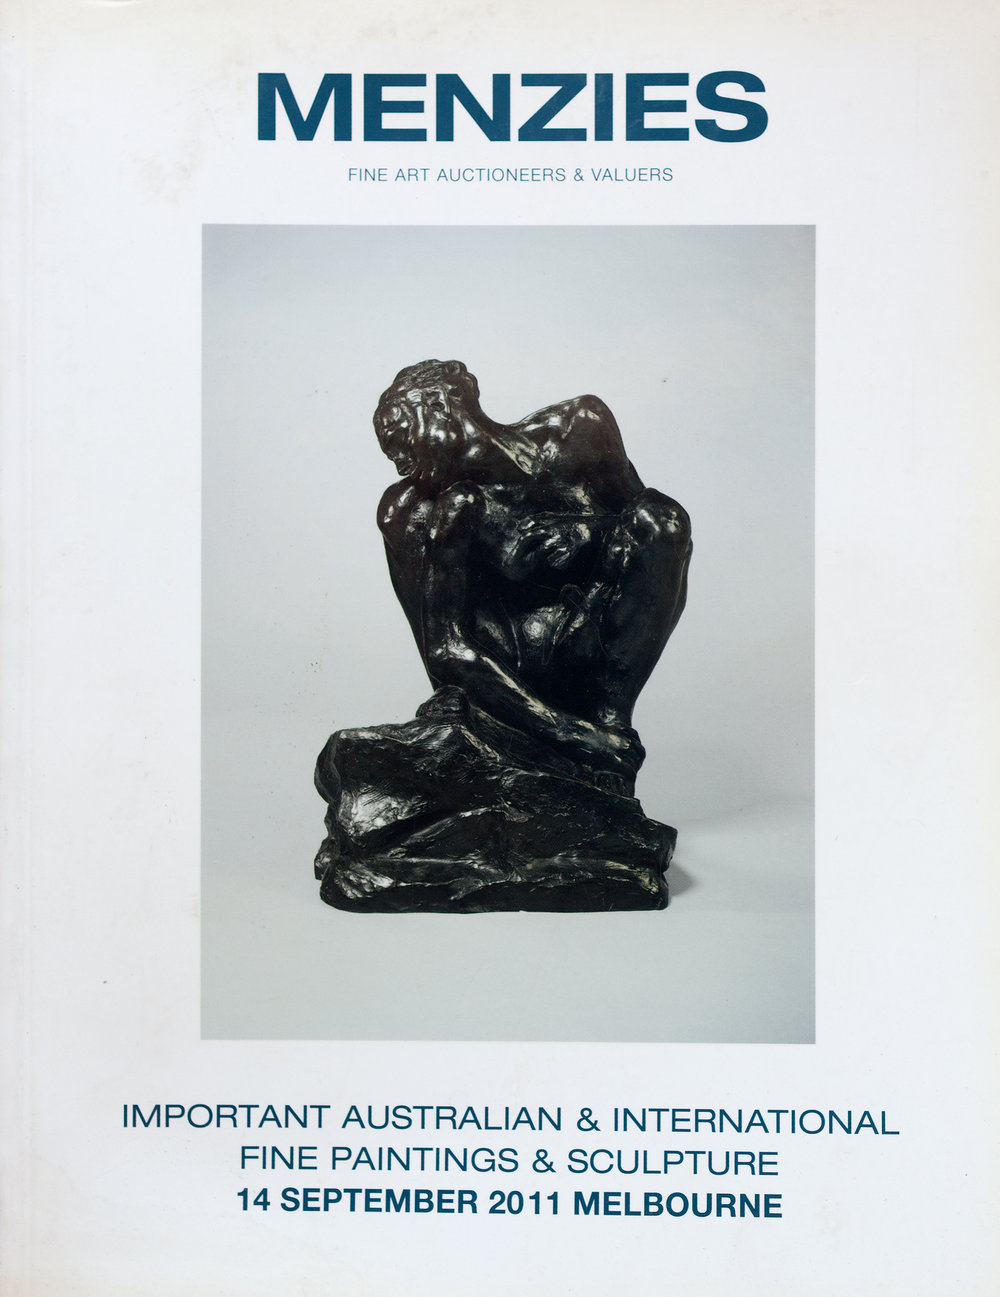 171023 Menzies Catalogues_023.jpg